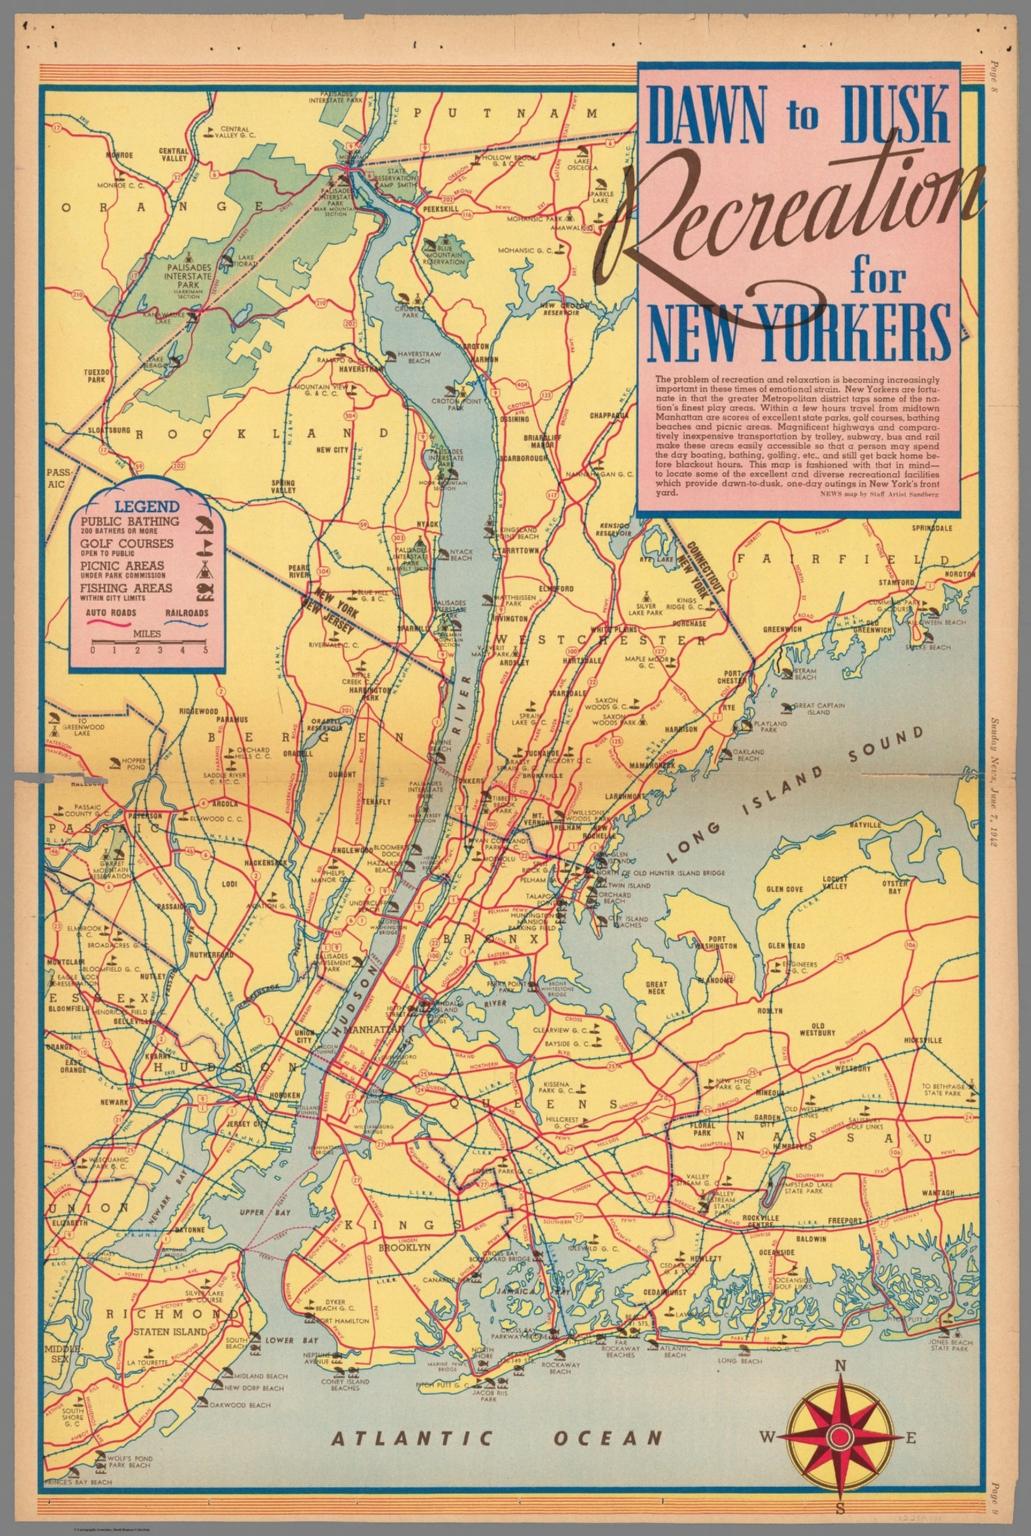 Dawn to Dusk Recreation for New Yorkers. June 7, 1942.